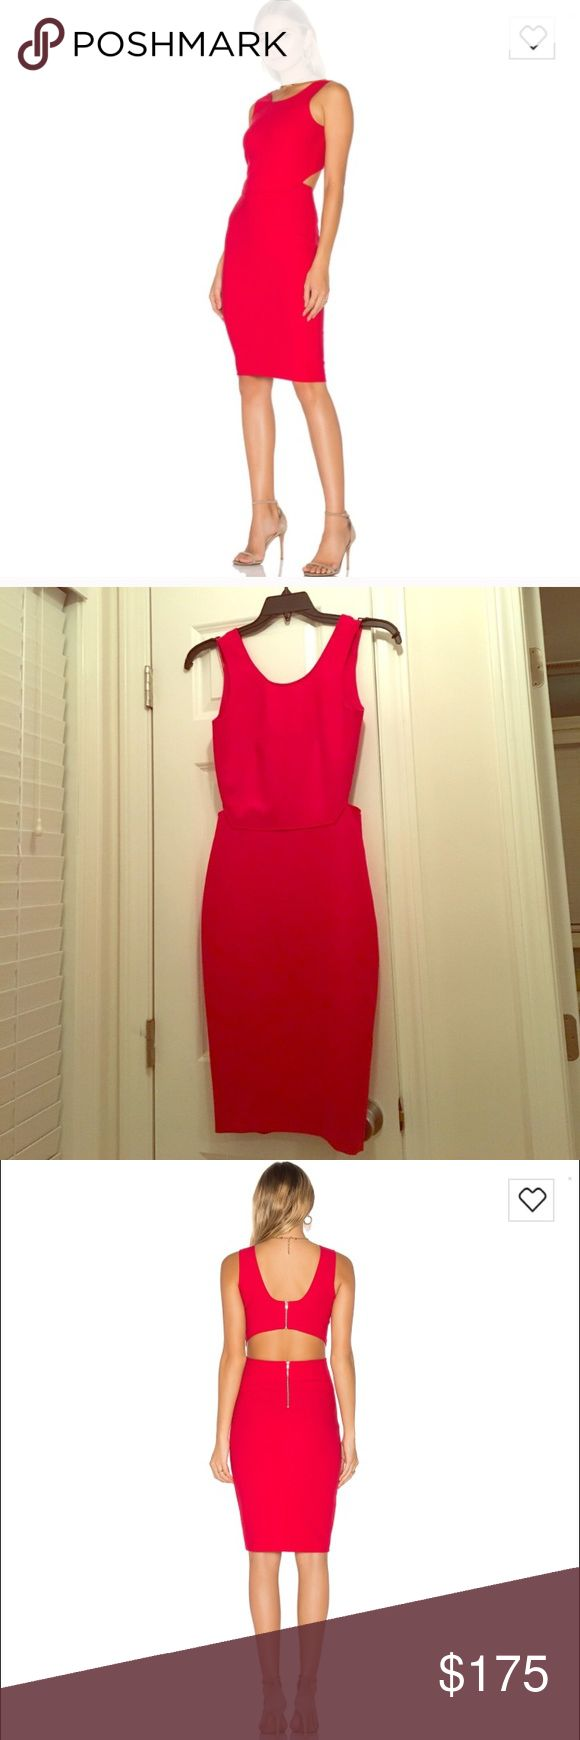 Elizabeth and James Emmy Dress Beautiful bright red Elizabeth and James Emmy dress in cardinal. Two separate back zippers for top and bottom sections of dress. Elizabeth and James Dresses Midi